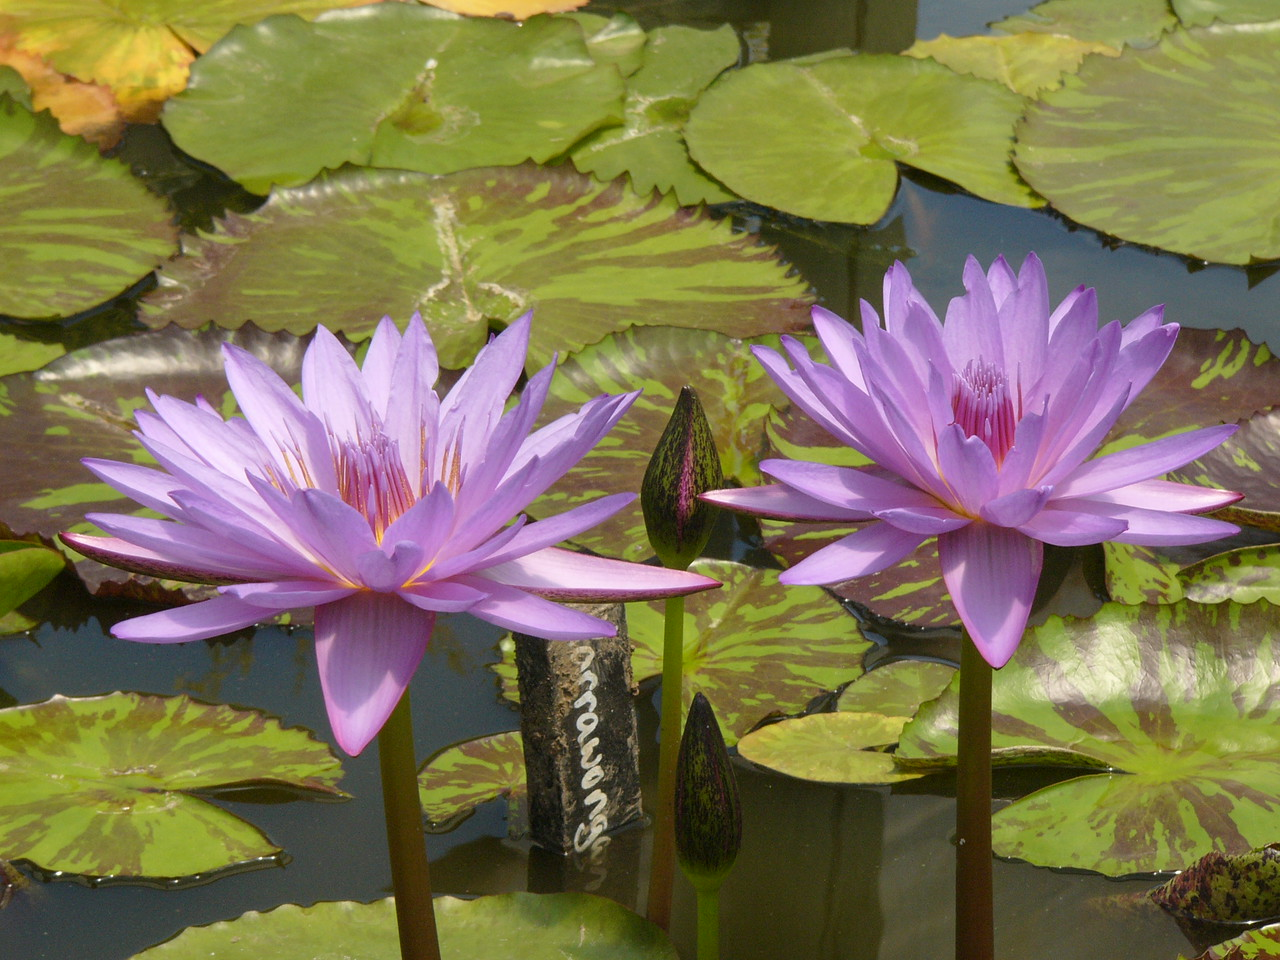 20120105_1242_3011 water lilies